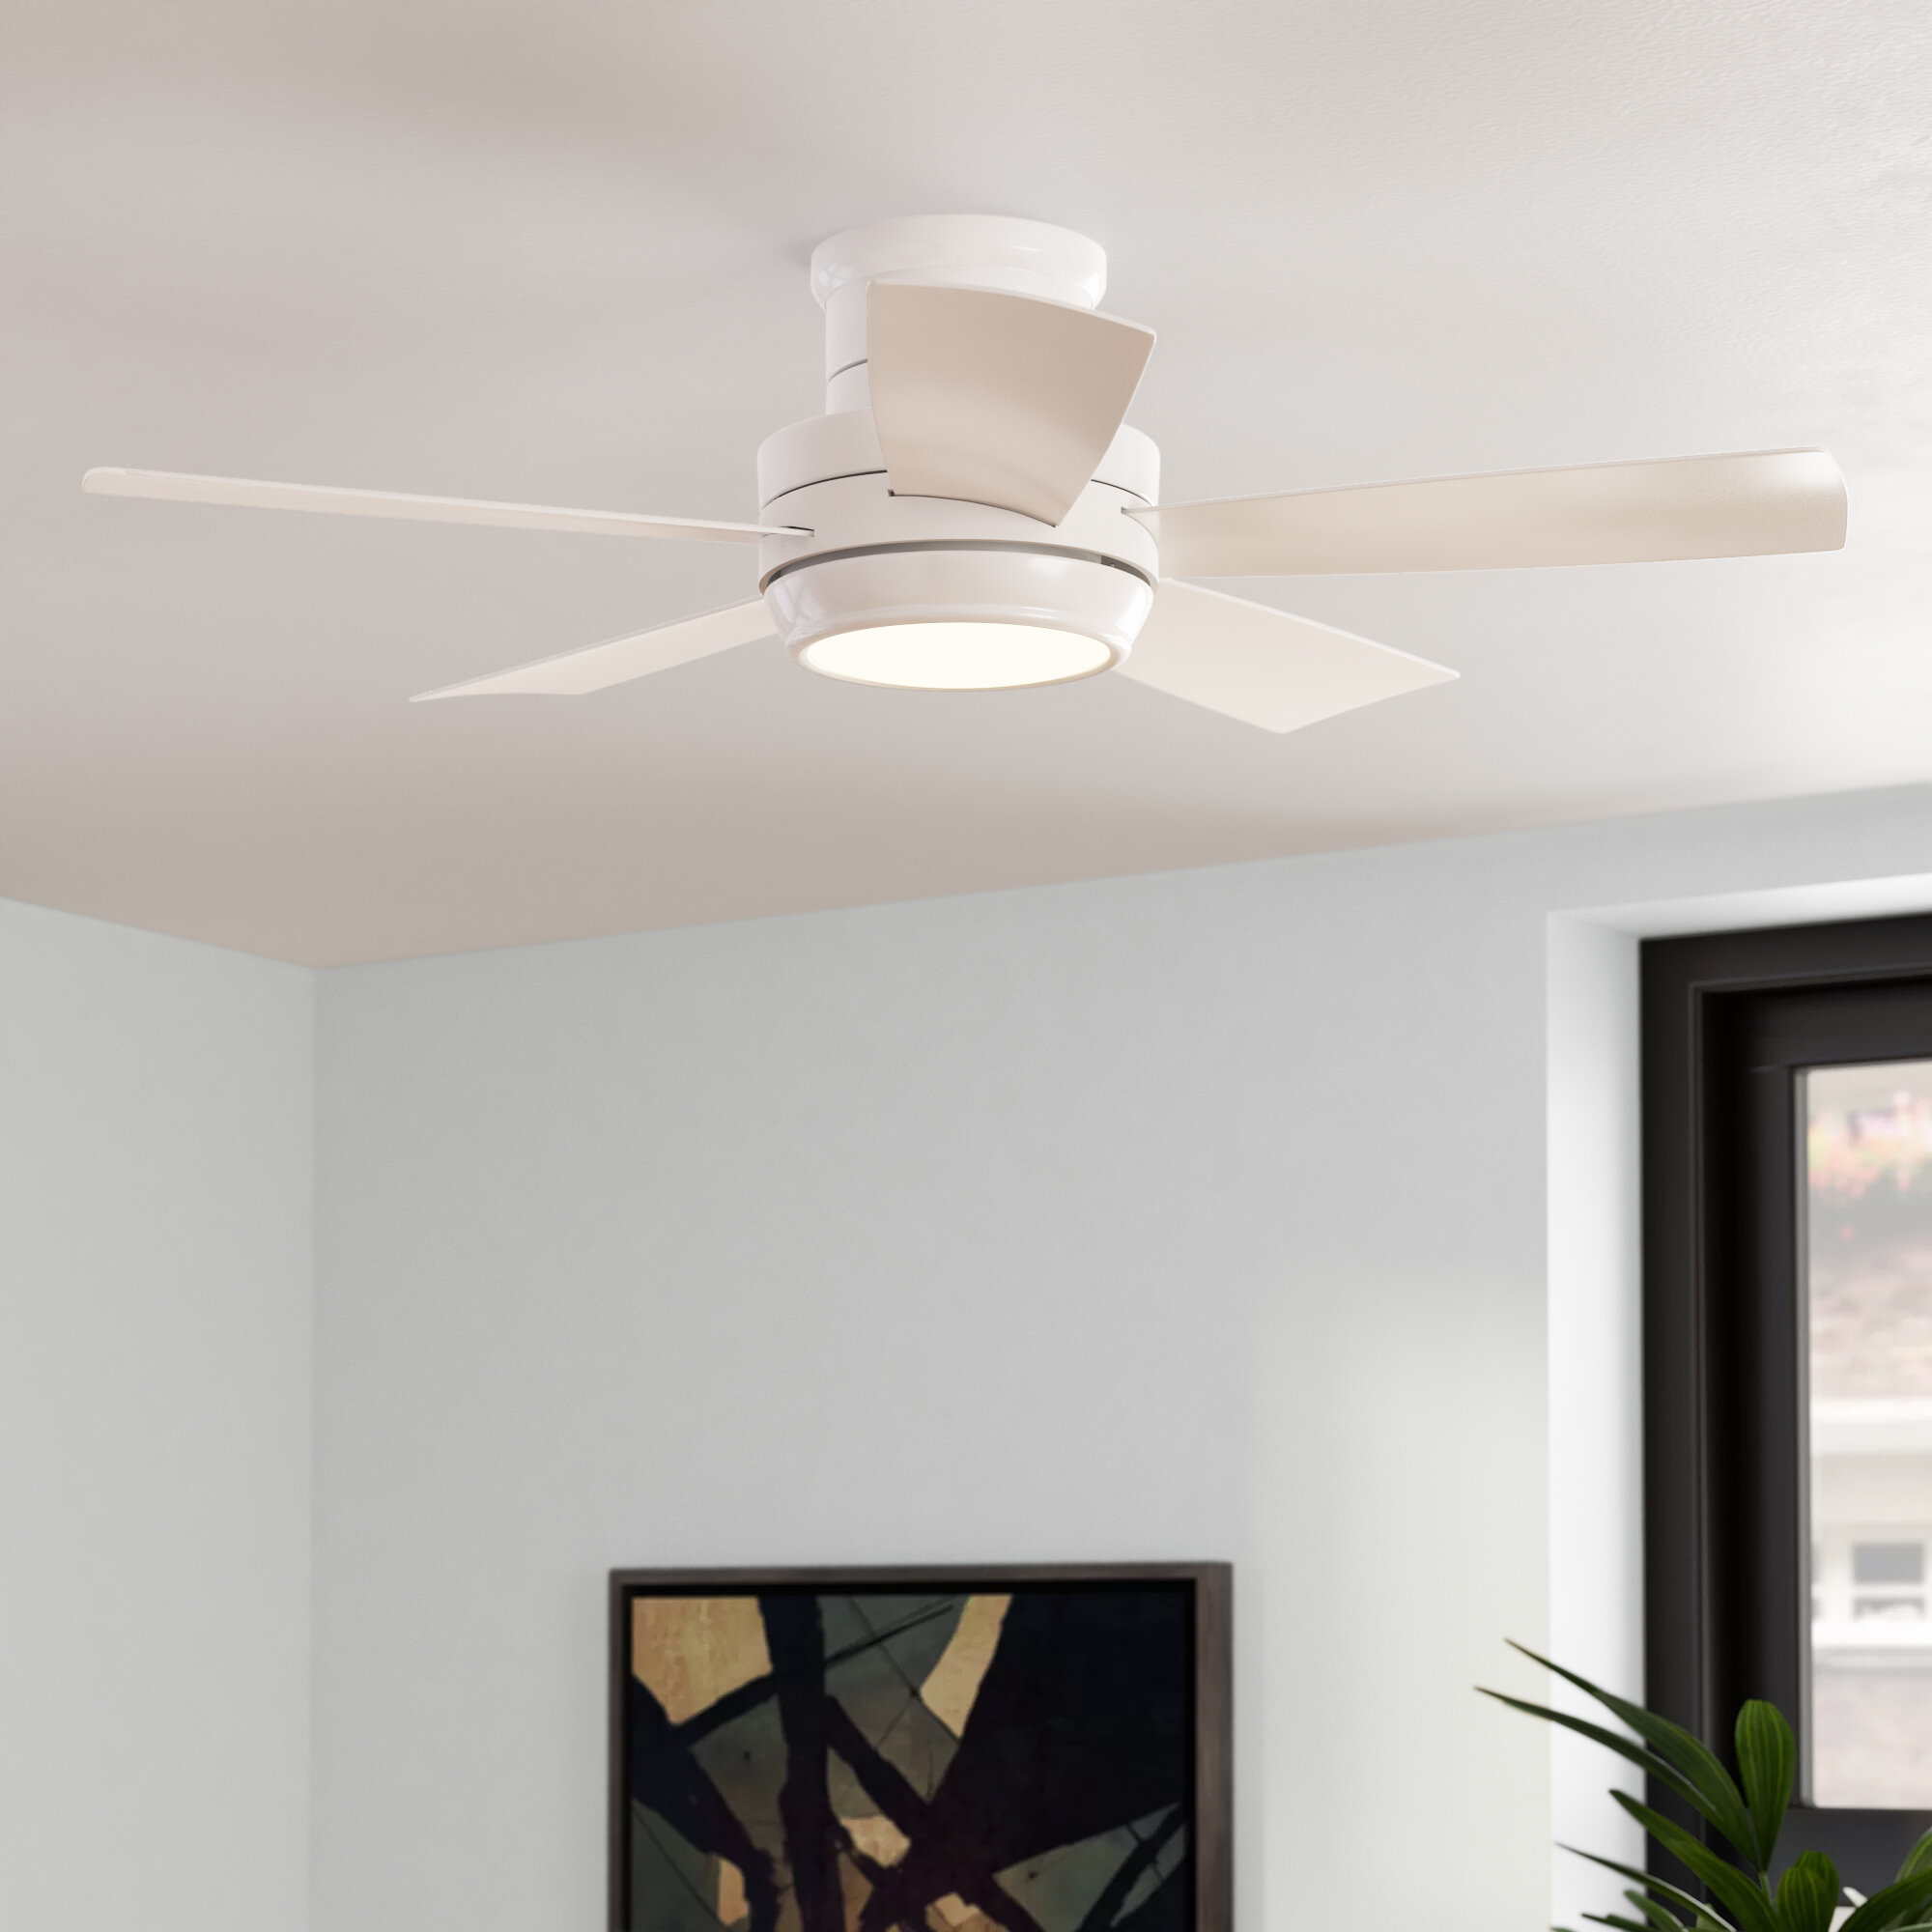 Latitude Run 44 Jaron 5 Blade Outdoor Led Standard Ceiling Fan With Remote Control And Light Kit Included Reviews Wayfair Ca